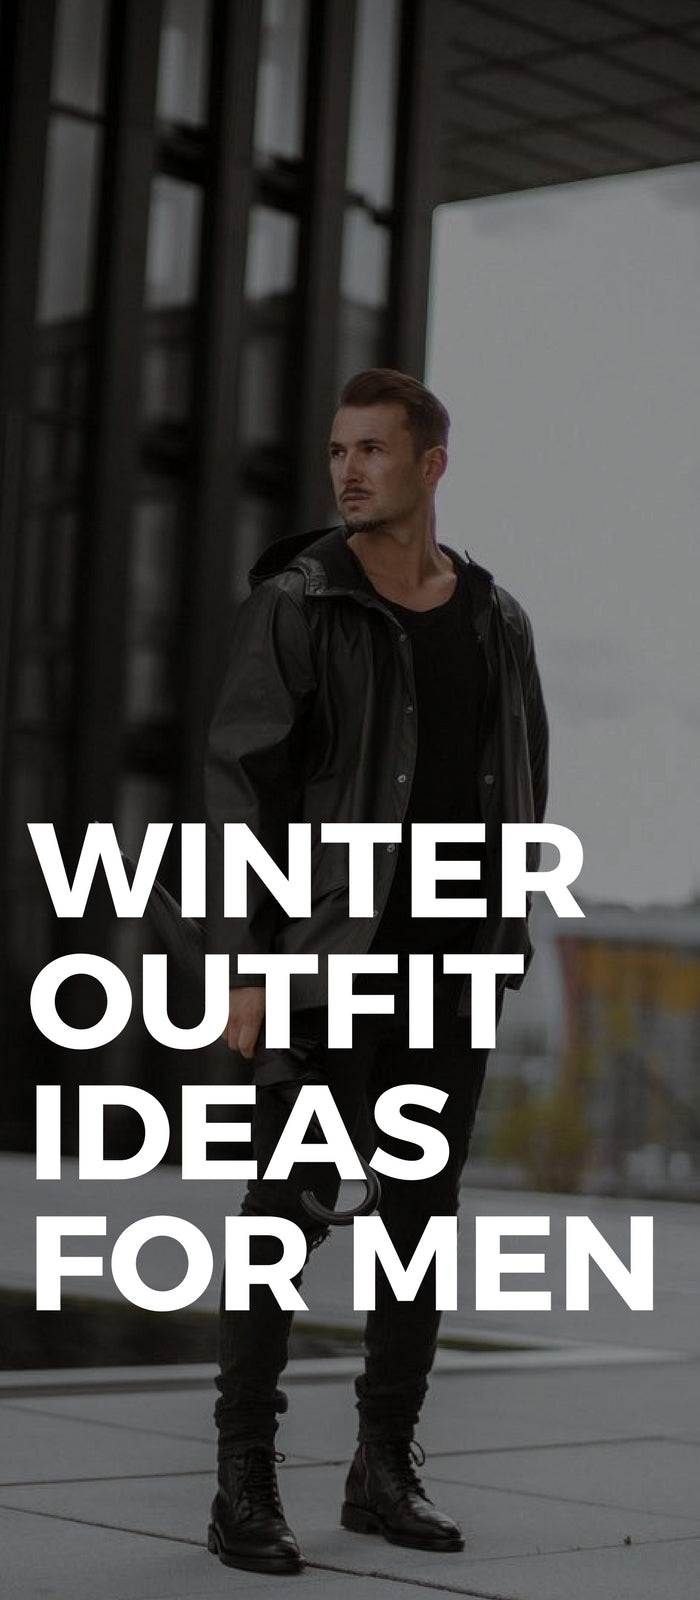 Winter outfit ideas for men